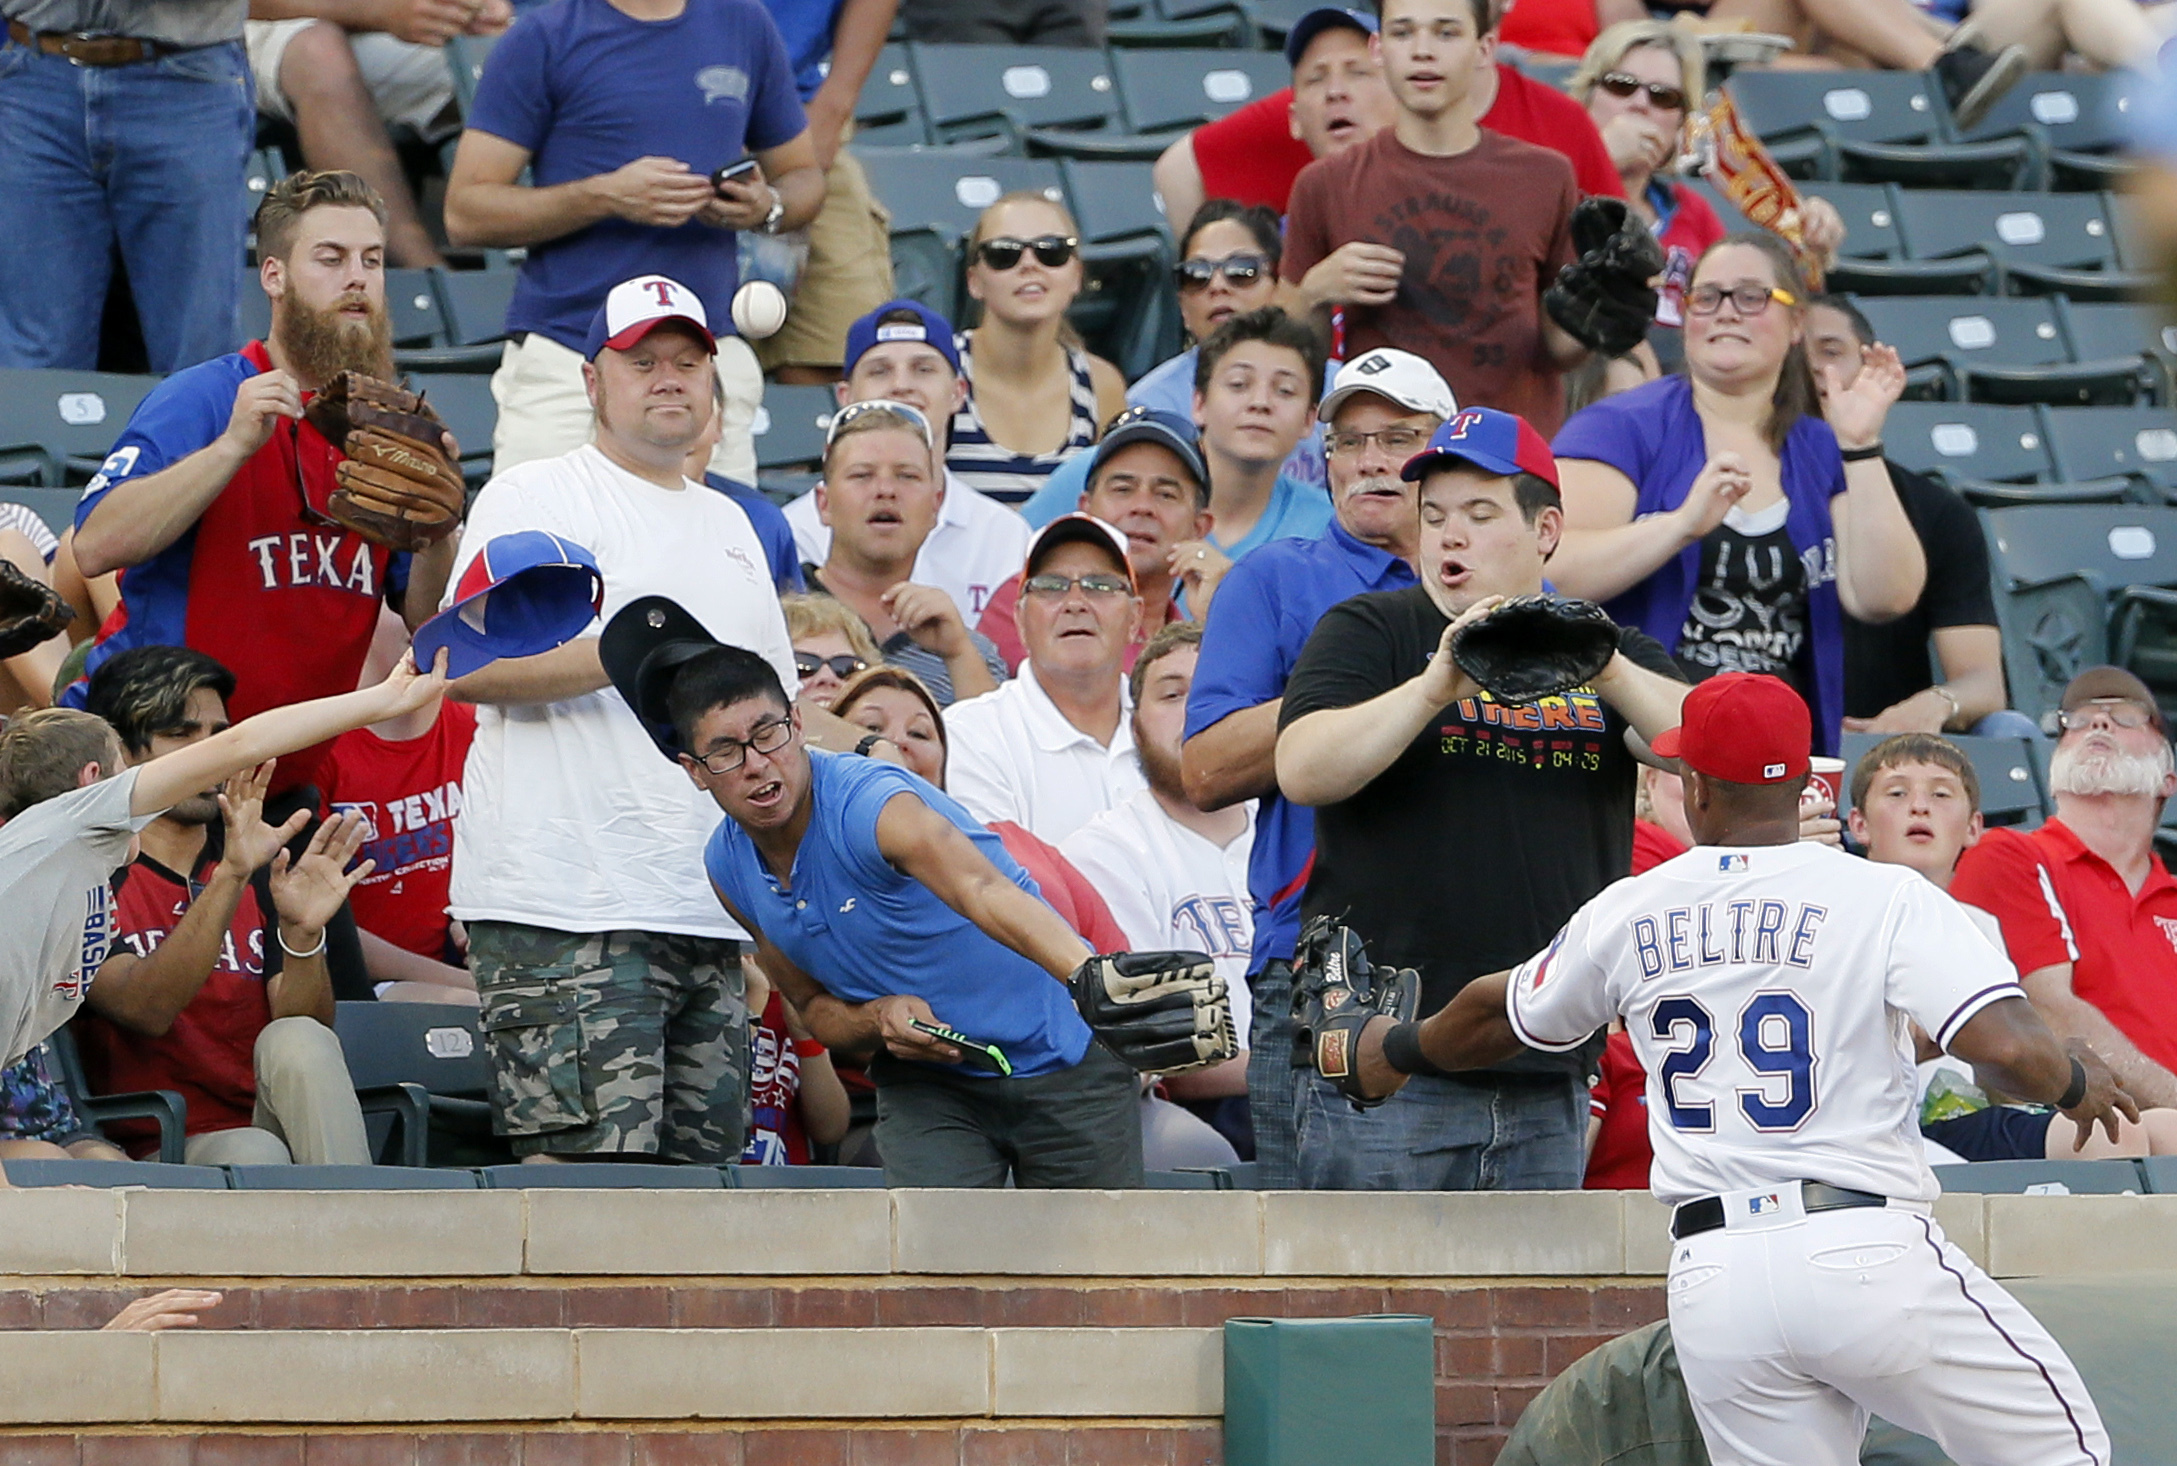 Fans and Texas Rangers third baseman Adrian Beltre (29) attempt to reach pop foul ball hit by Colorado Rockies' Mark Reynolds during the first inning of a baseball game Wednesday, Aug. 10, 2016, in Arlington, Texas. (AP Photo/Tony Gutierrez)